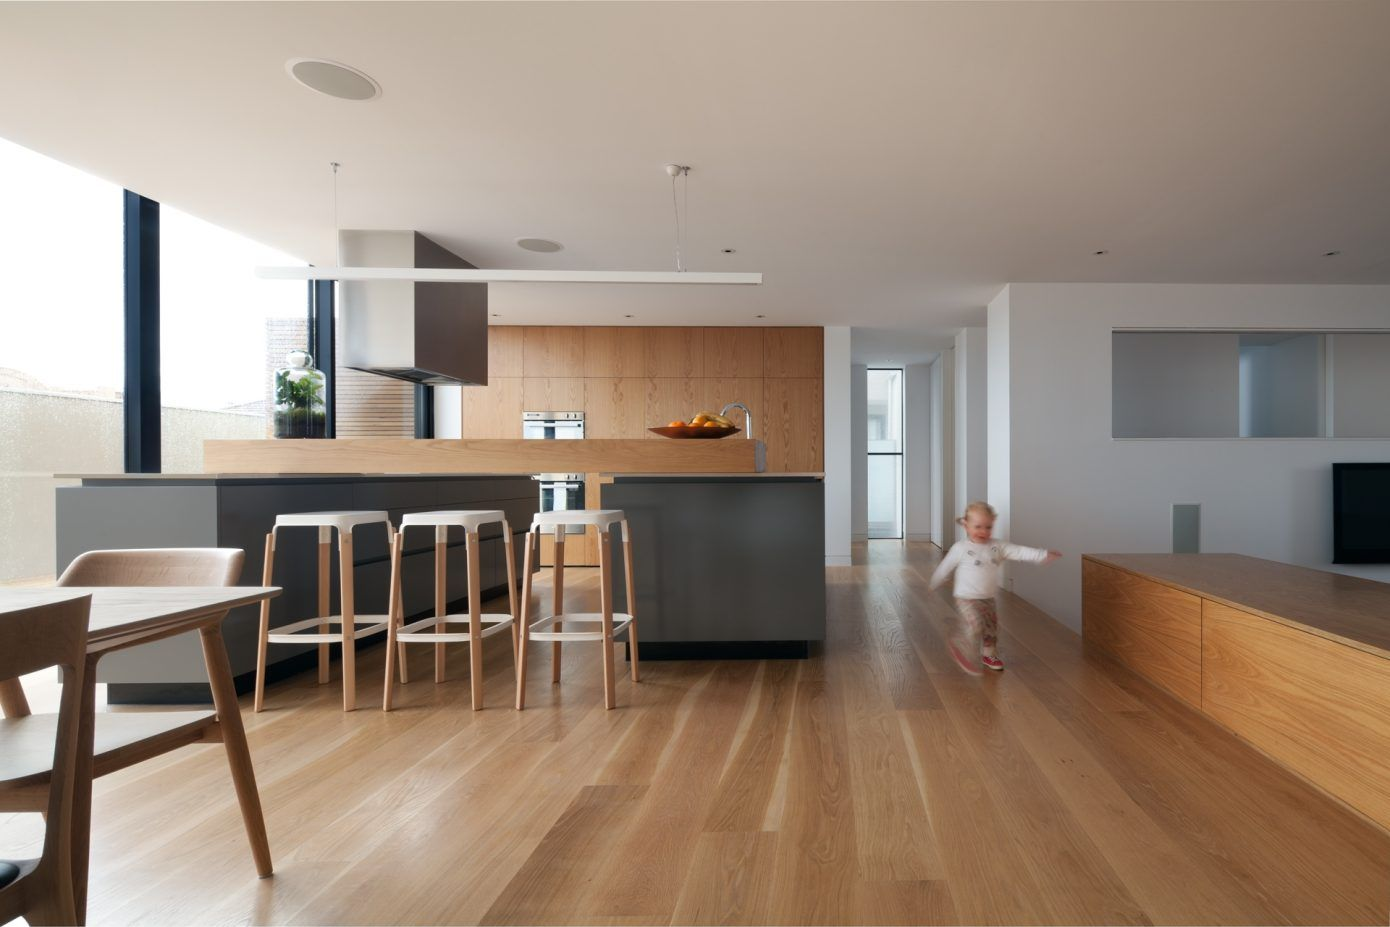 Northcote Home by Pleysier Perkins (With images) Kitchen